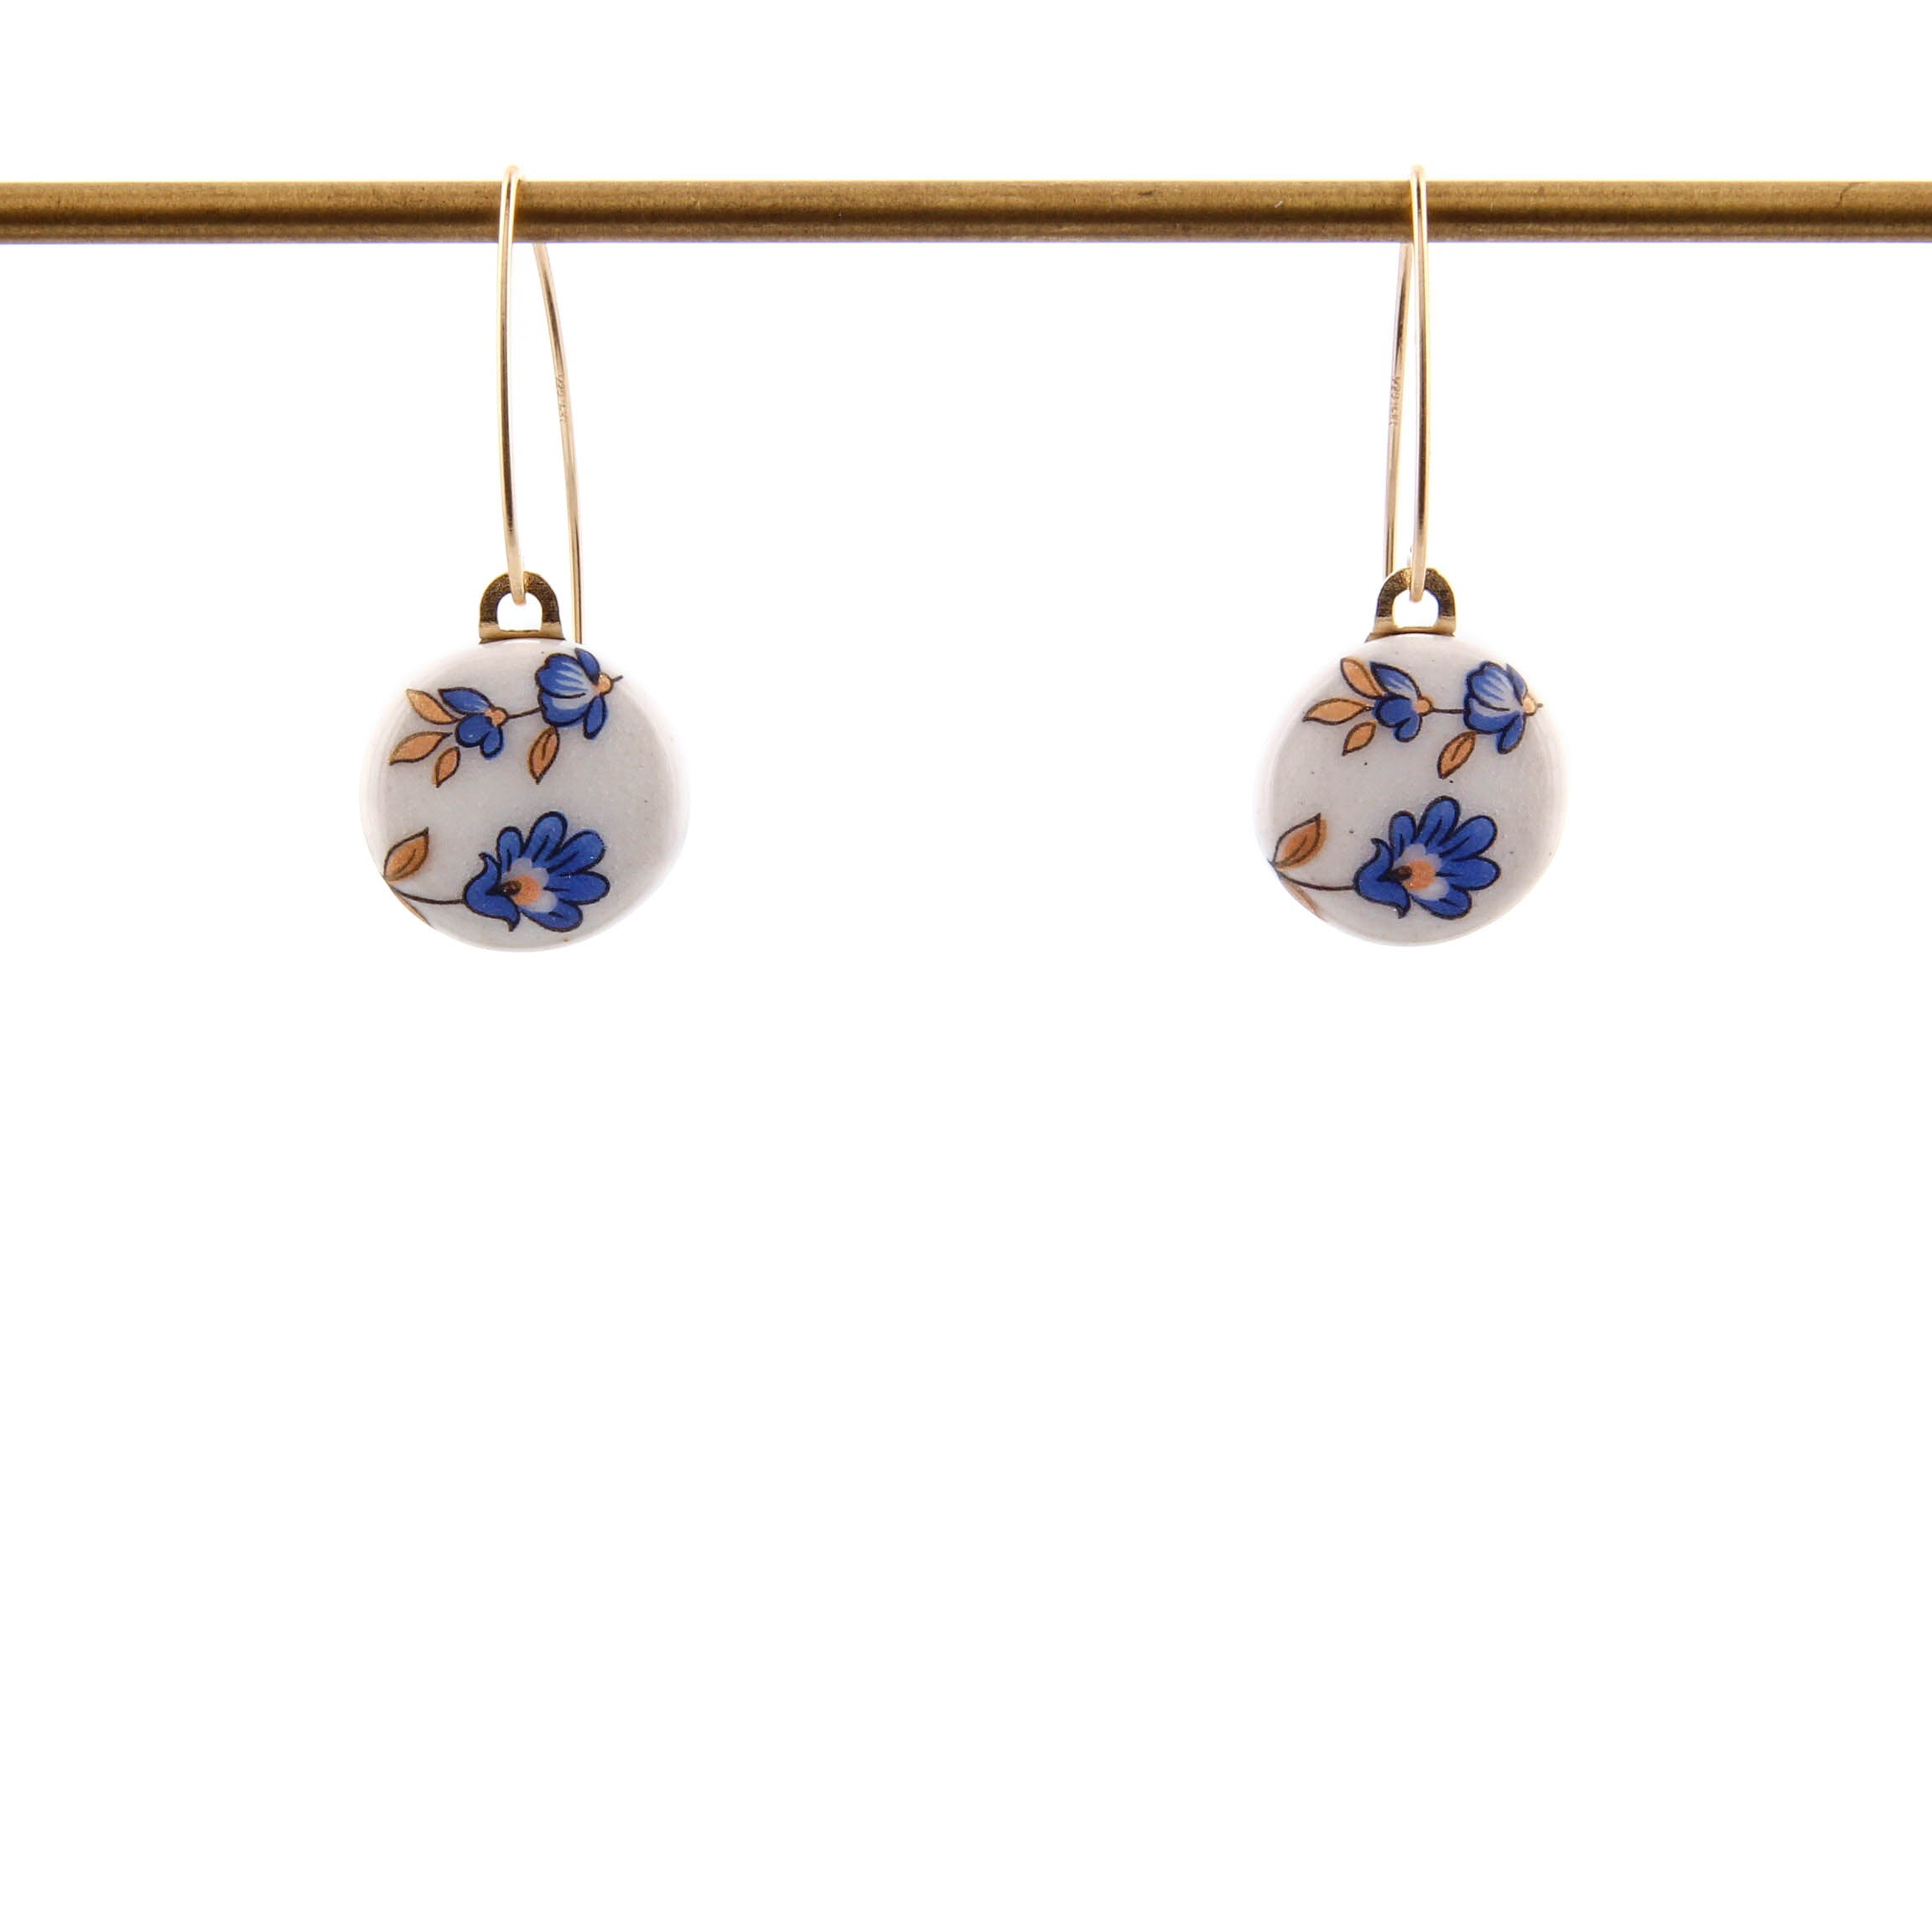 Melanie Sherman, Blue Flower on White Porcelain Earrings